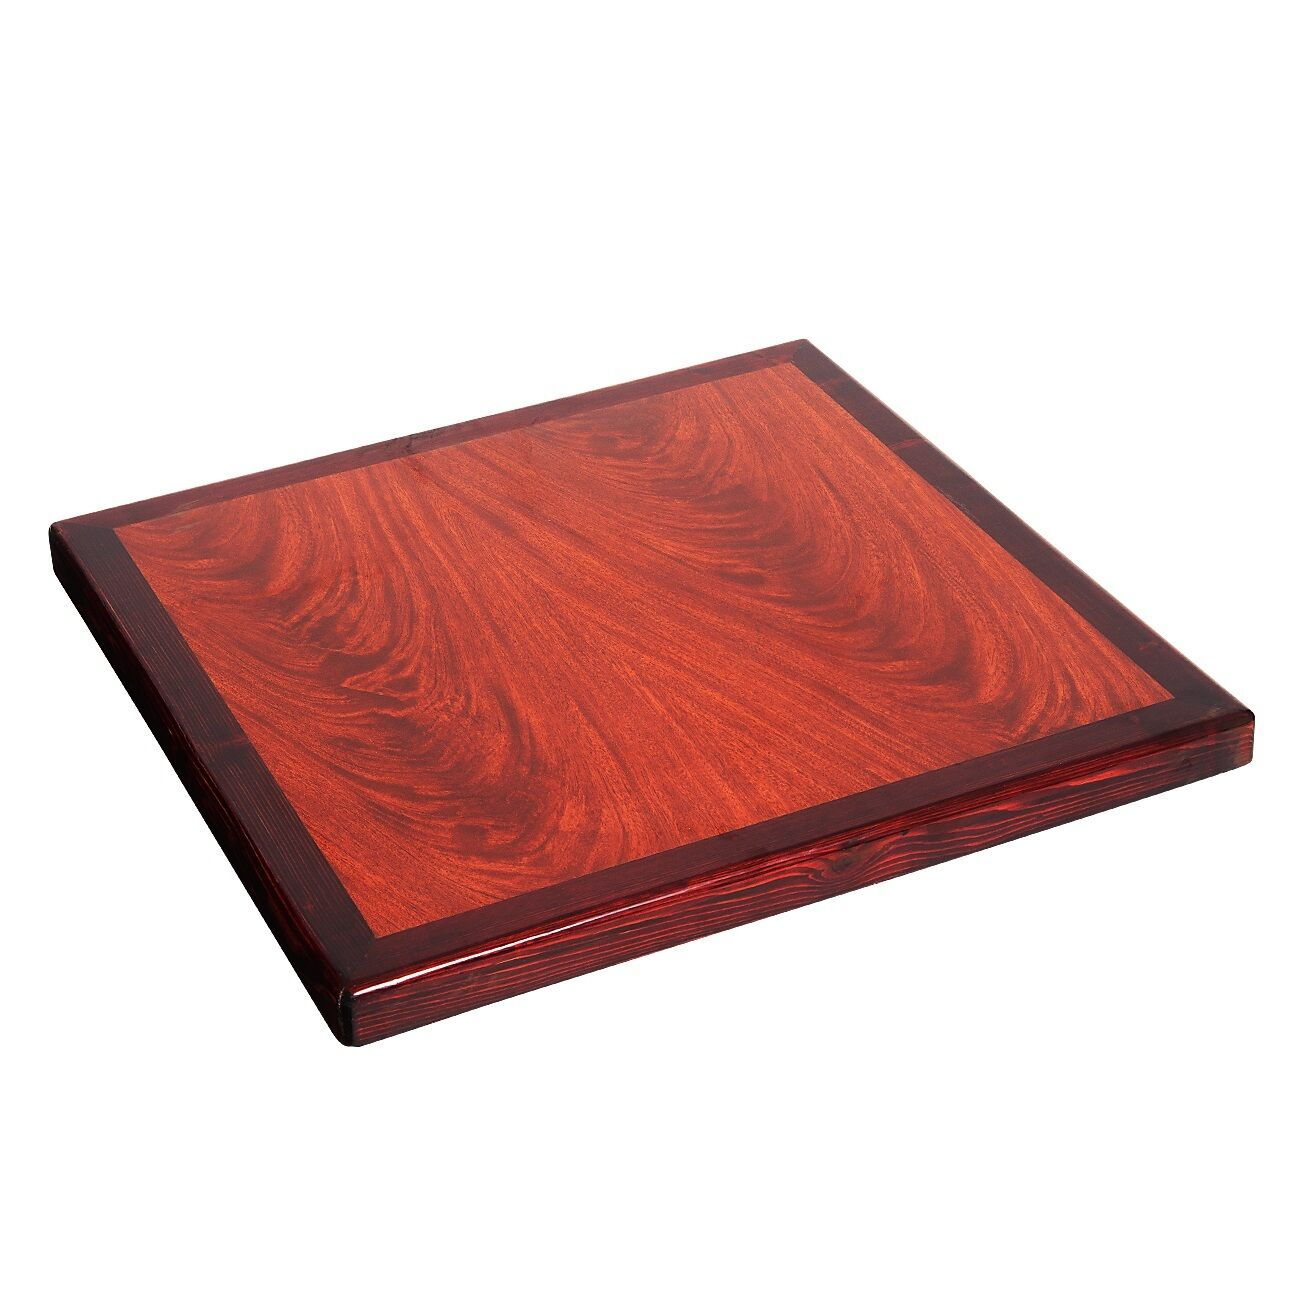 Lot Of Square Restaurant Resin Table Tops Wood Edge Cherry - Restaurant resin table tops